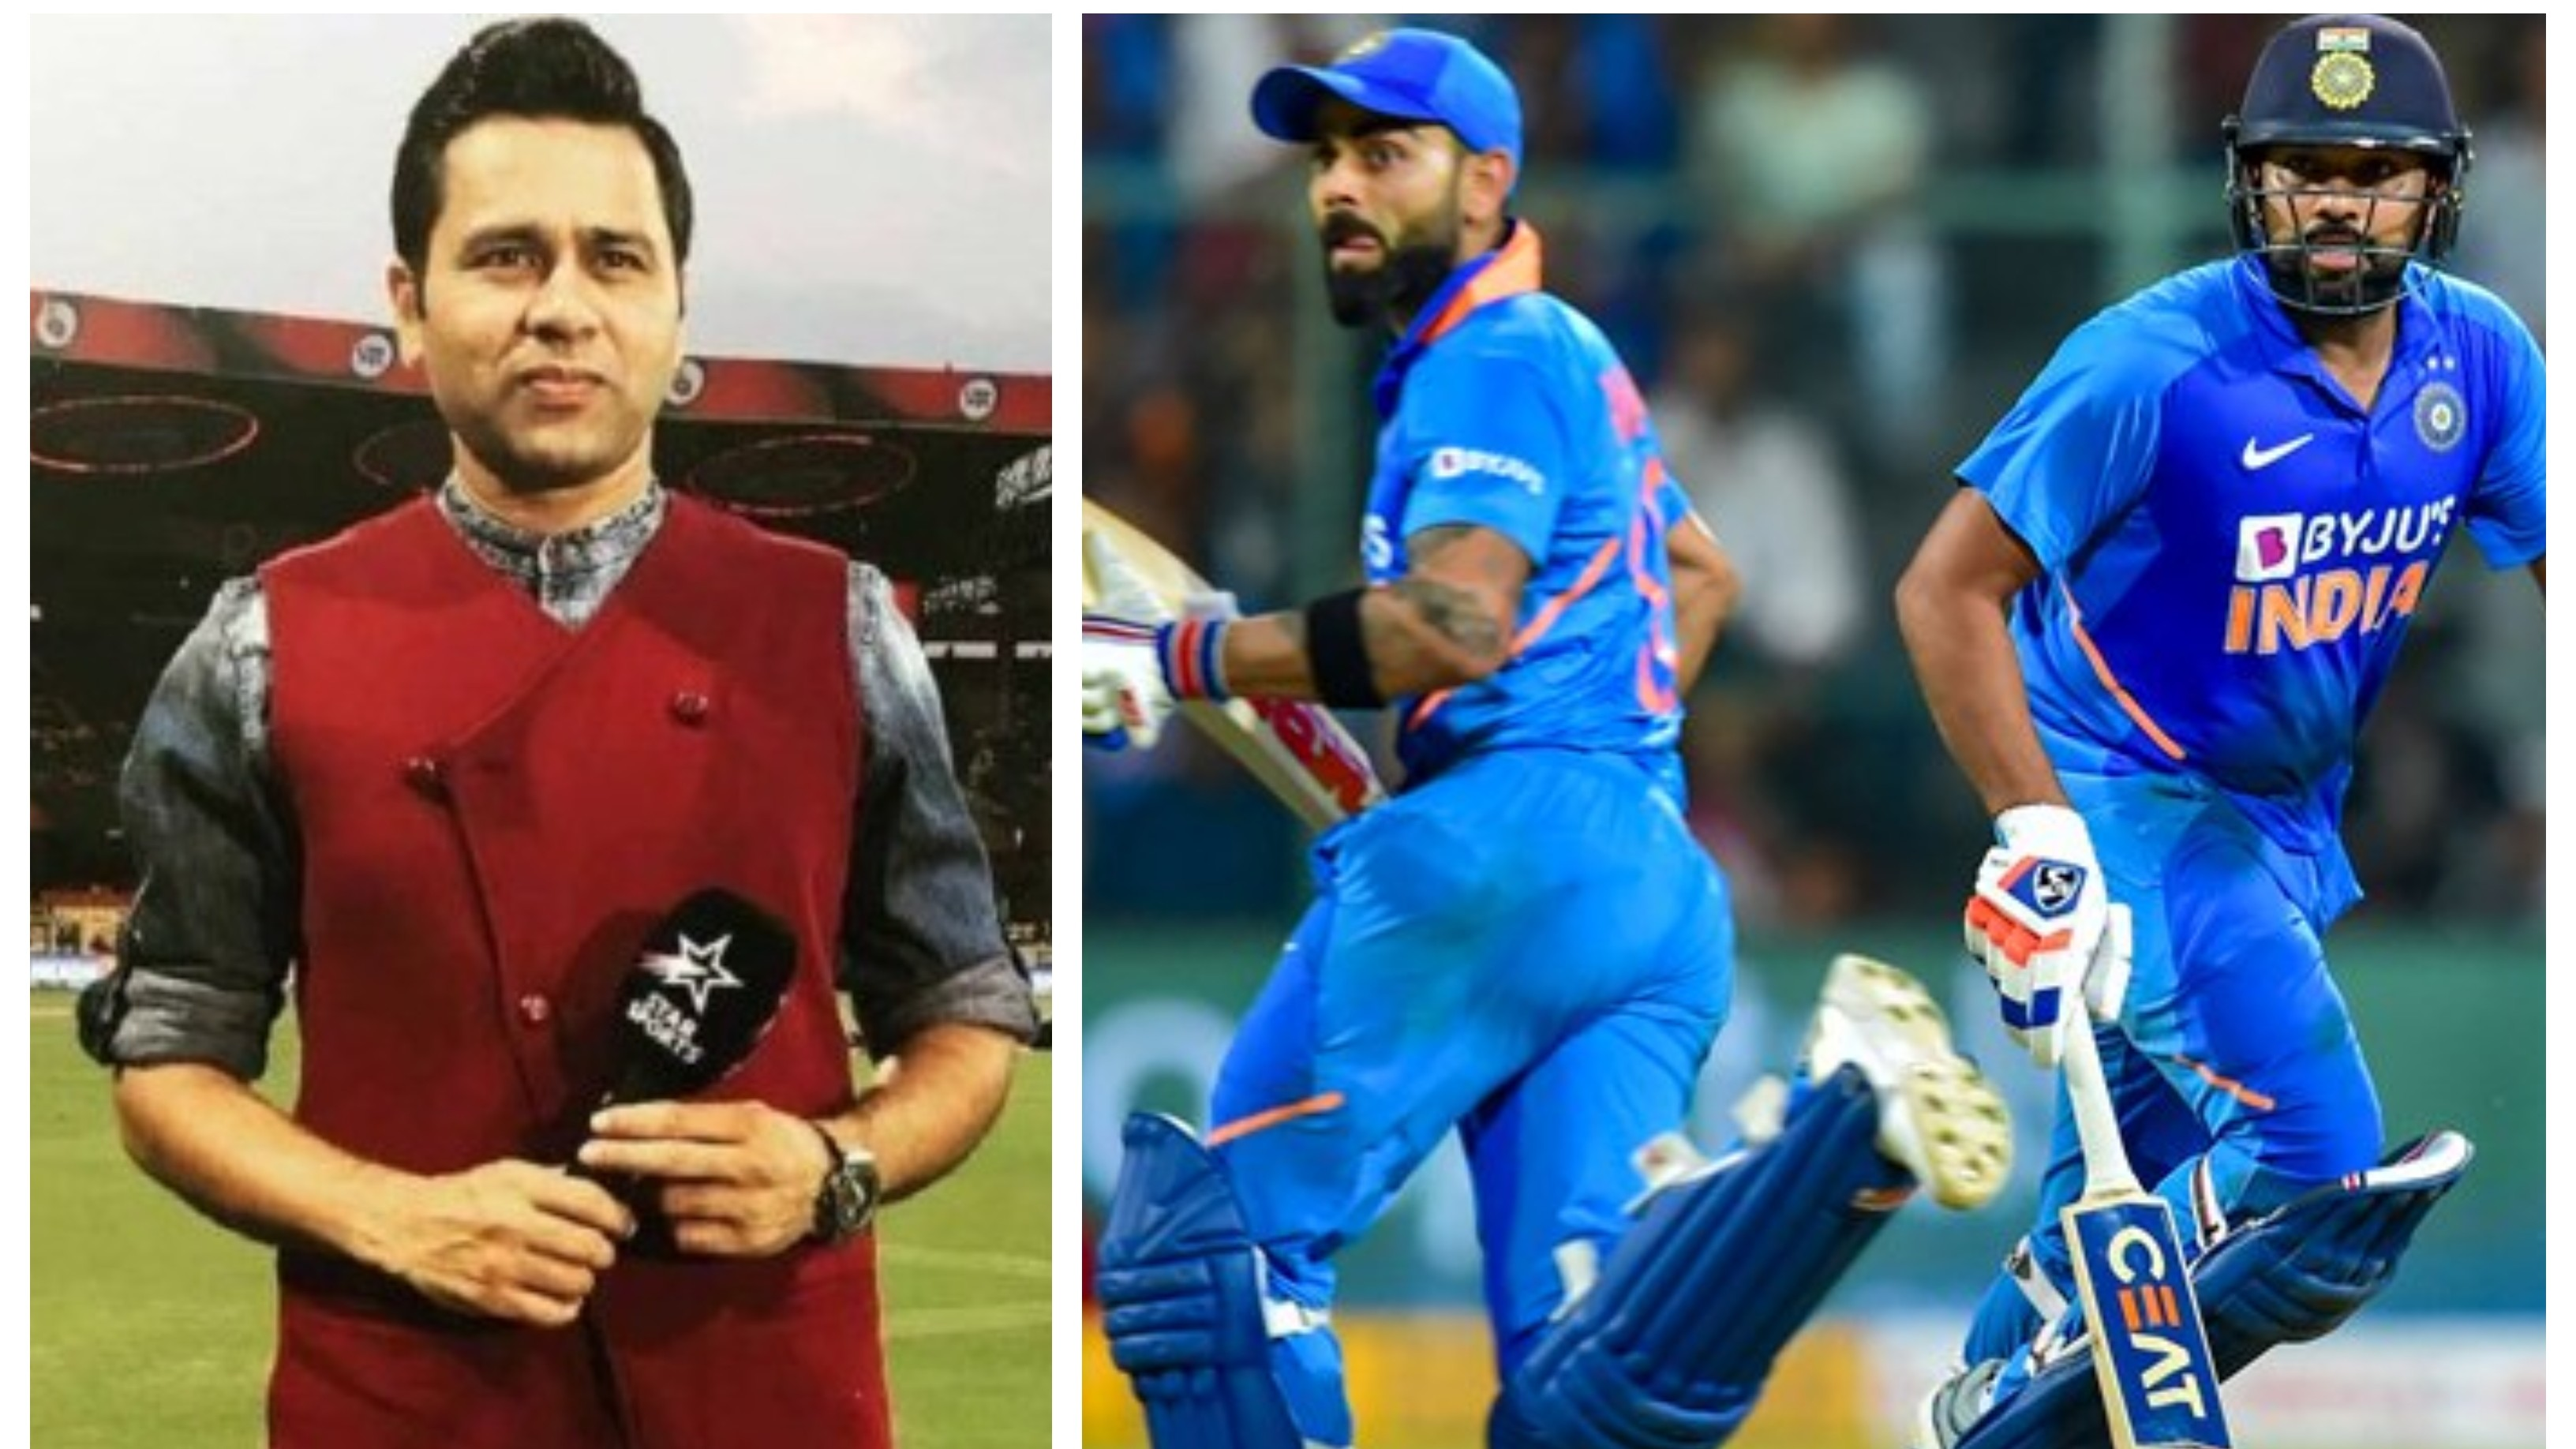 India may think of 'change in leadership' if they fail to win 1 of the 2 upcoming T20 WCs: Aakash Chopra